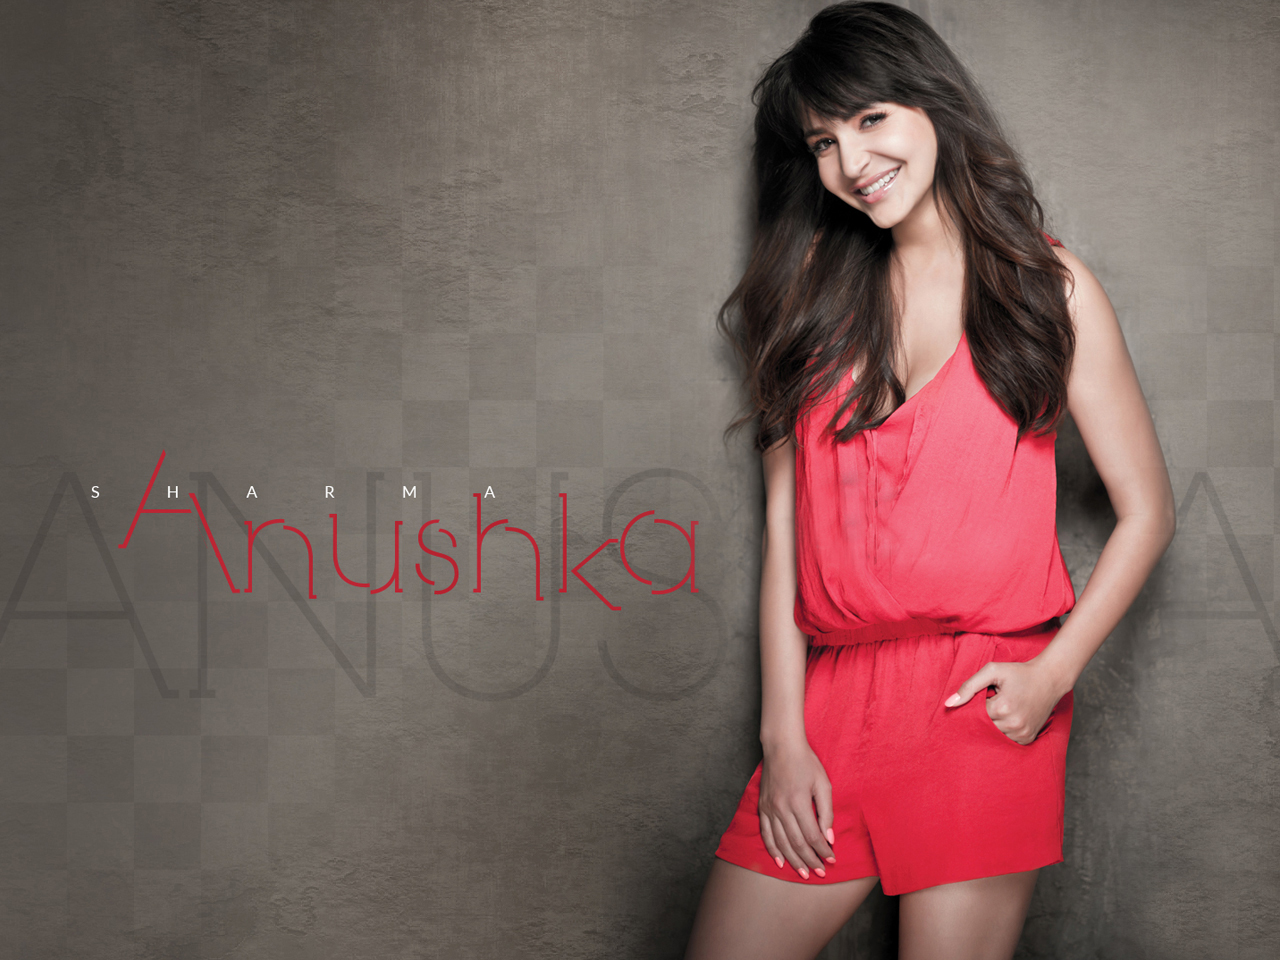 Anushka Sharma Hot  Sexy Bikini Hd Wallpaper  Images -5407